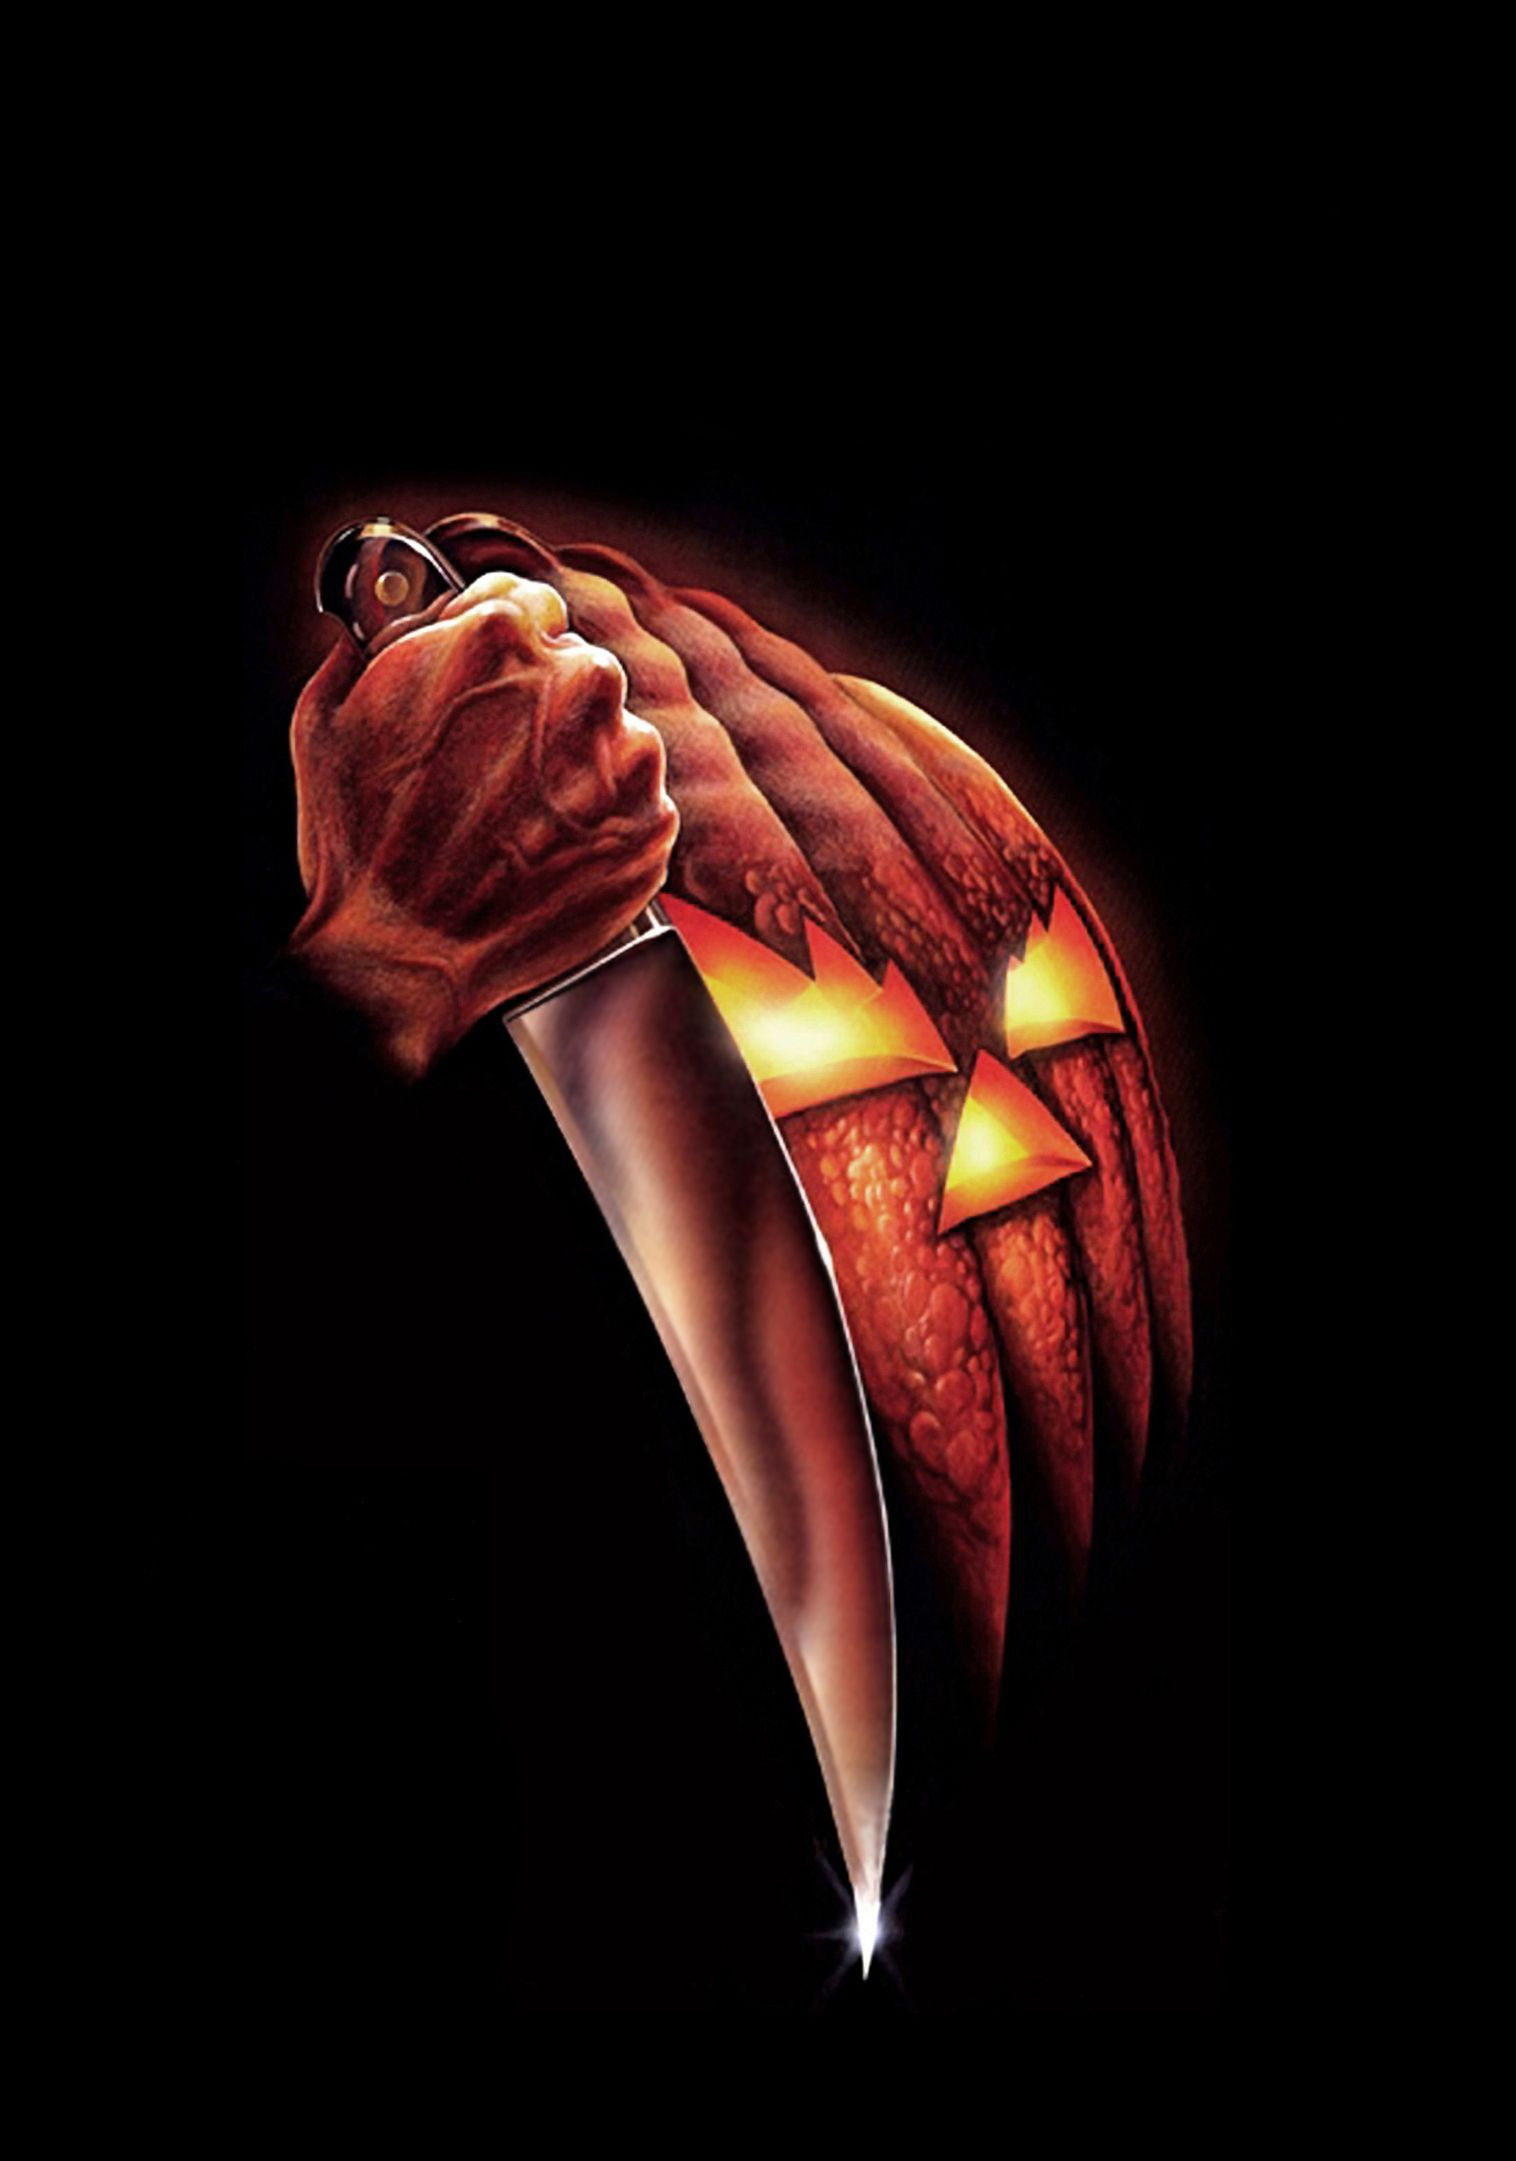 Halloween Sachen Einzigartig You Usually Don T See This original Movie Poster without the